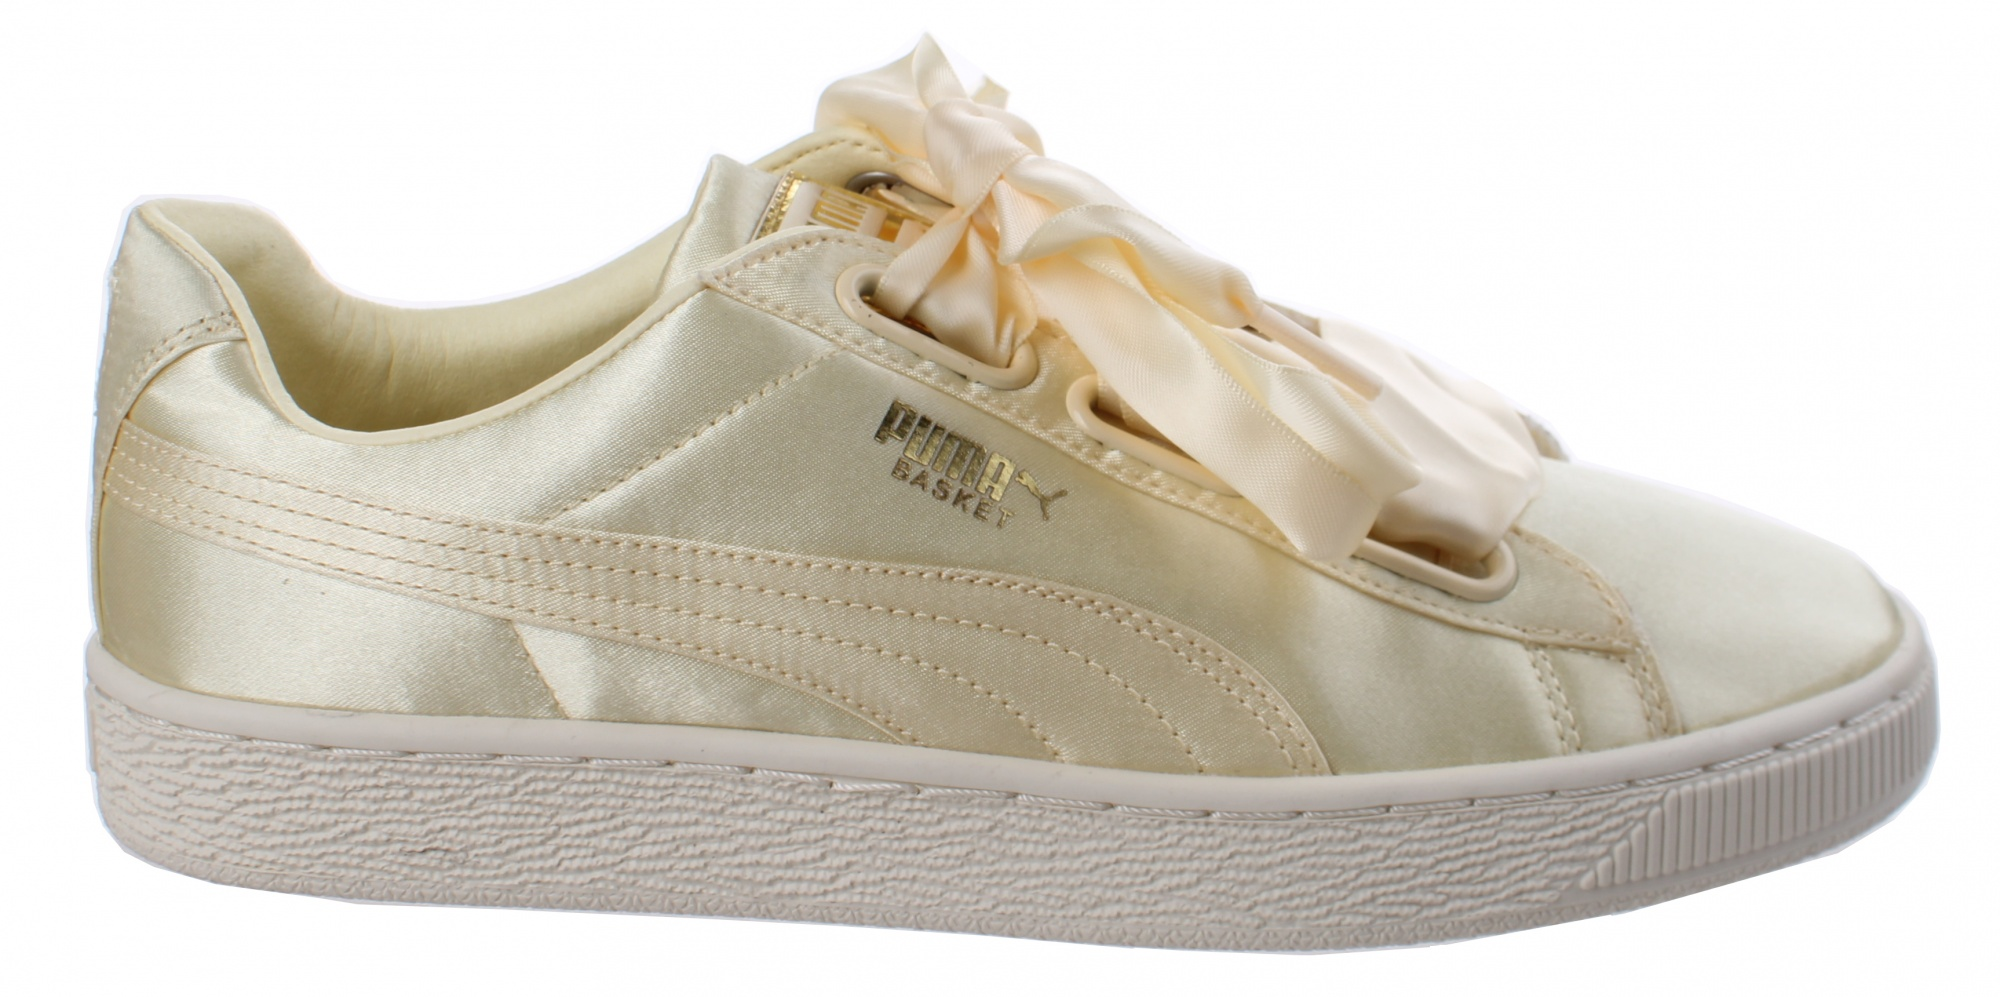 new arrival f3042 8202f Puma sneakers Basket Heart ladies pale yellow - Internet ...